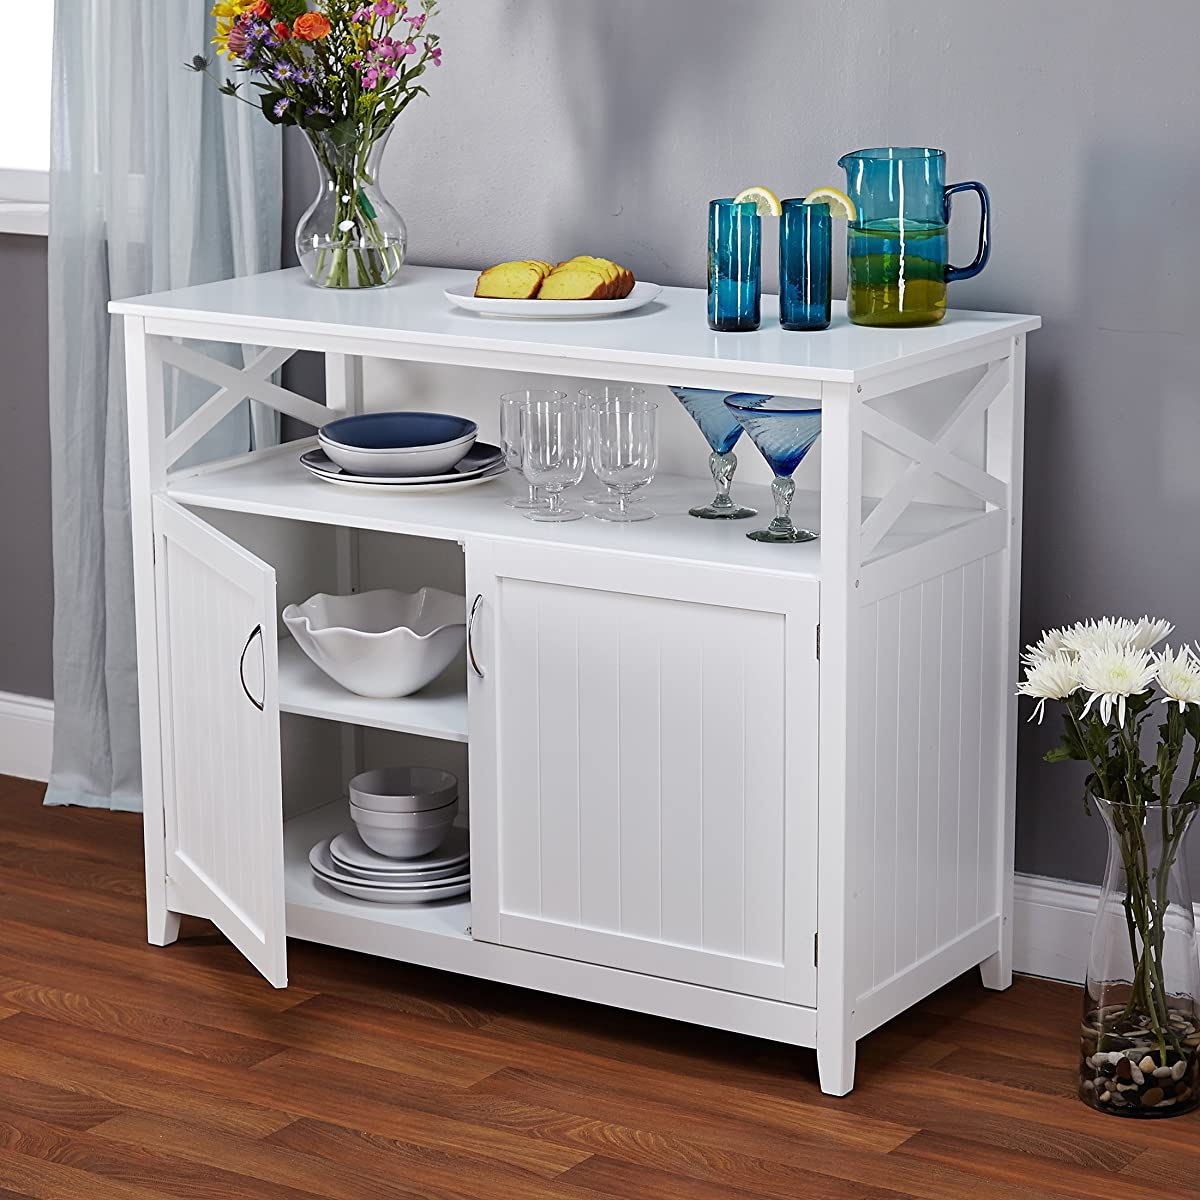 Contemporary Cottage Wooden Buffet in White Finish with Beadboard Doors